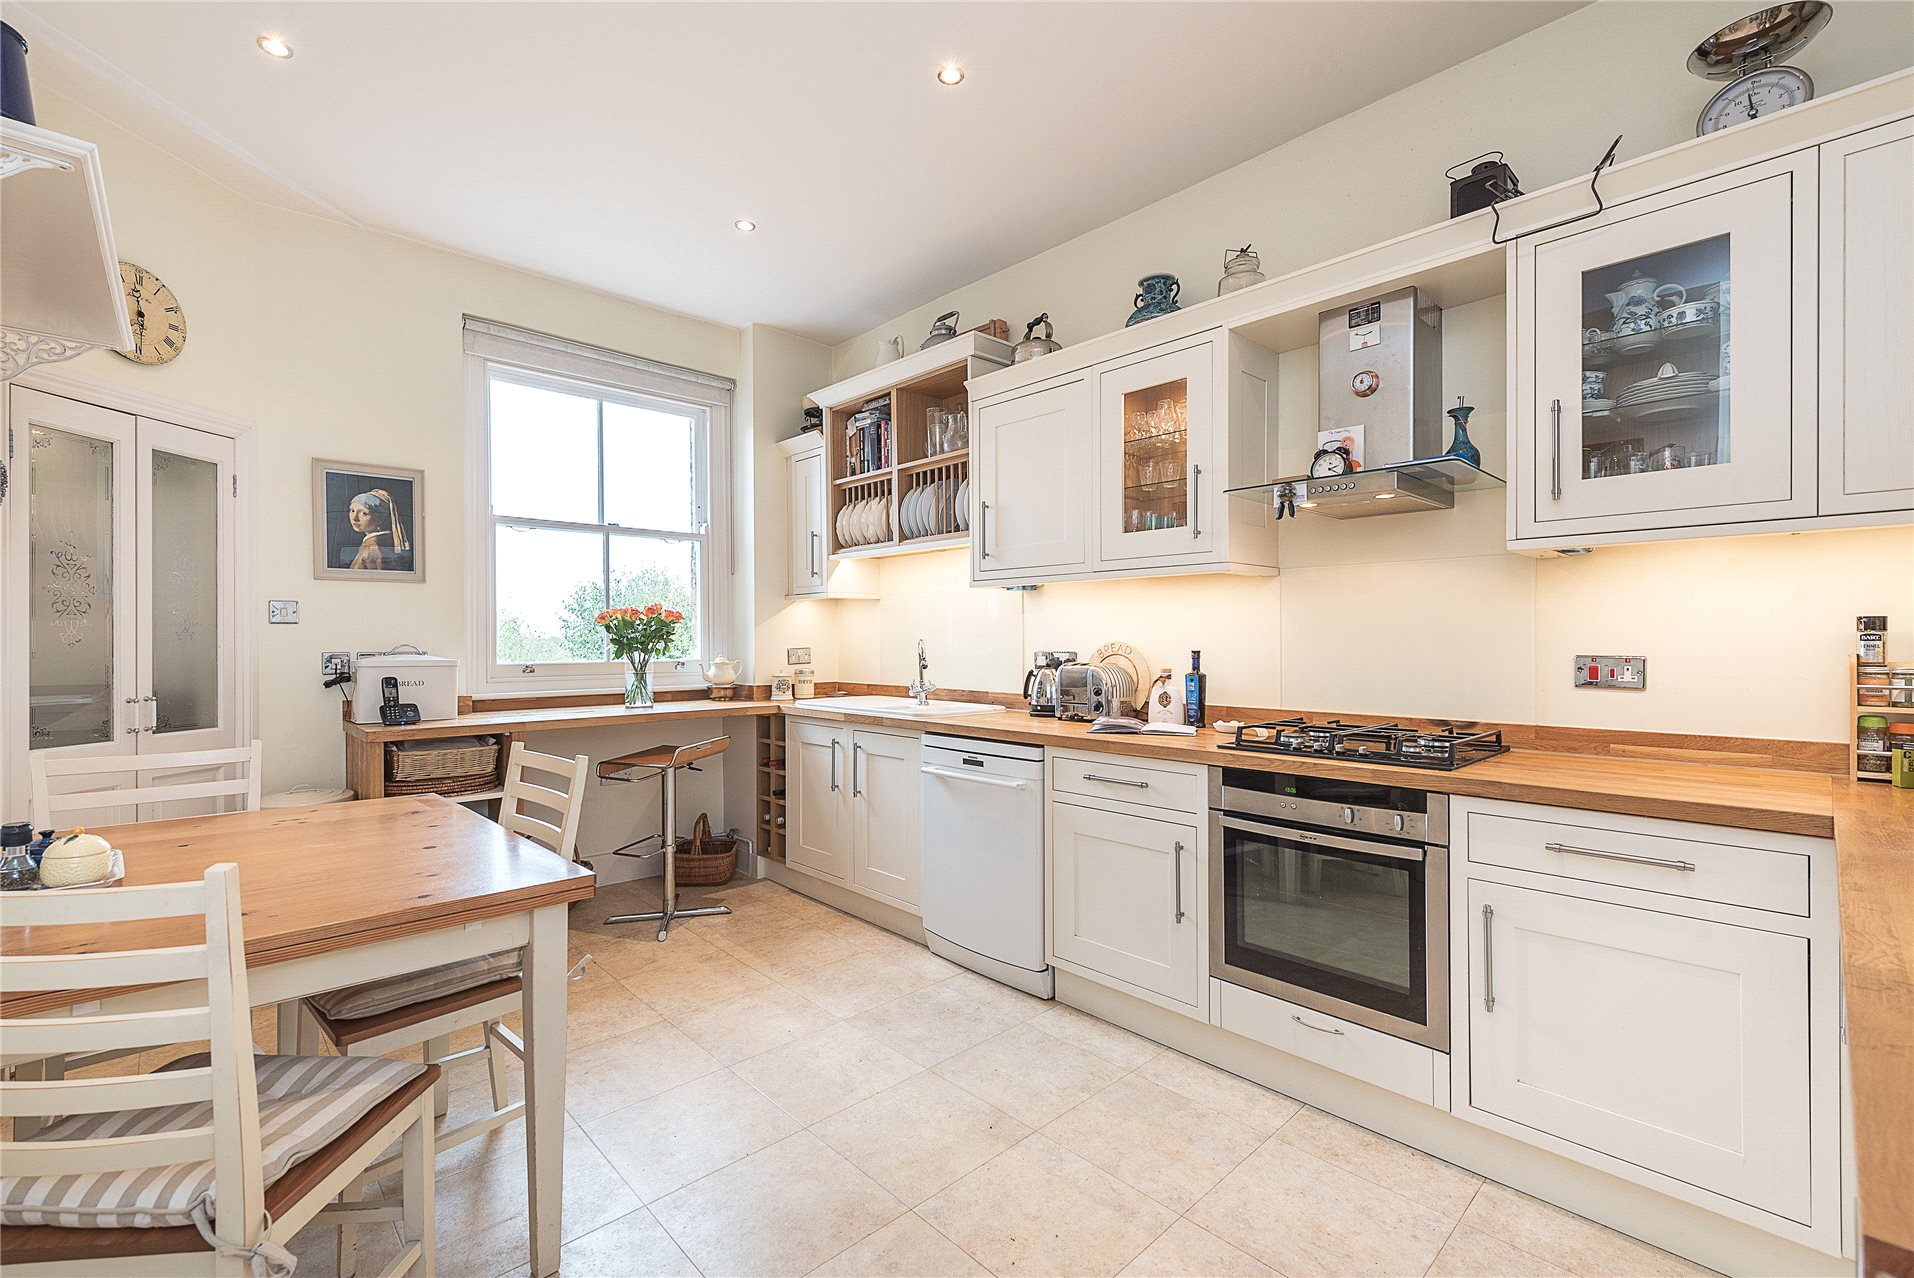 4 Bedrooms Flat for sale in Sandwell Mansions, West End Lane, London, NW6